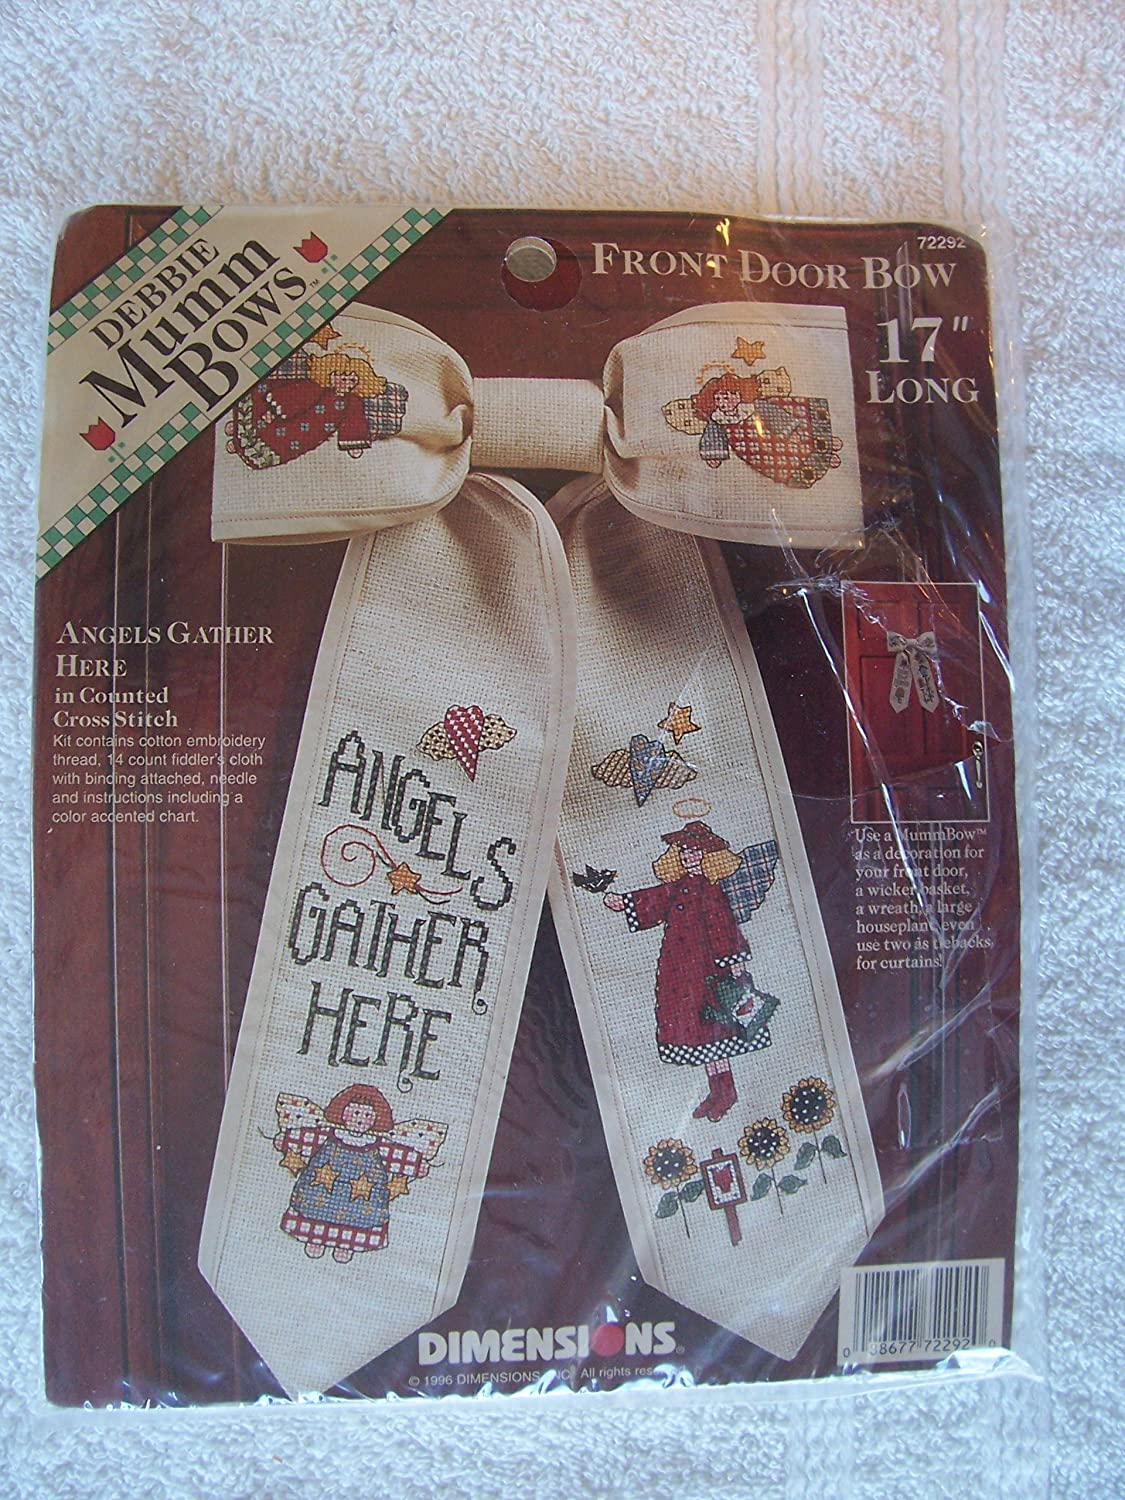 Dimensions Debbie Mumm Front Door Bow Counted Cross Stitch Kit ~ Angels Gather Here